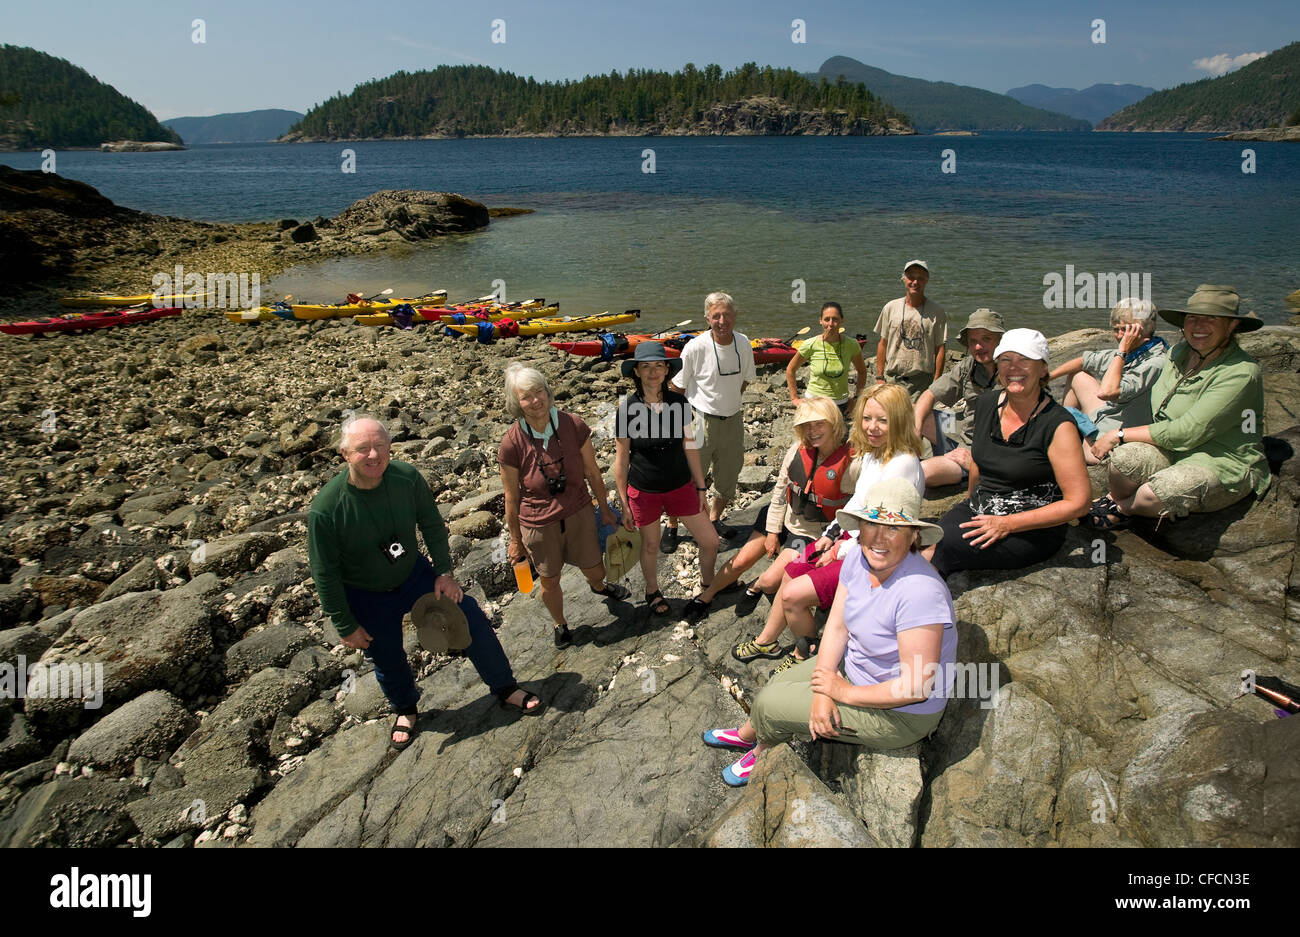 Paddlers Misty Isle's kayak business pose group - Stock Image